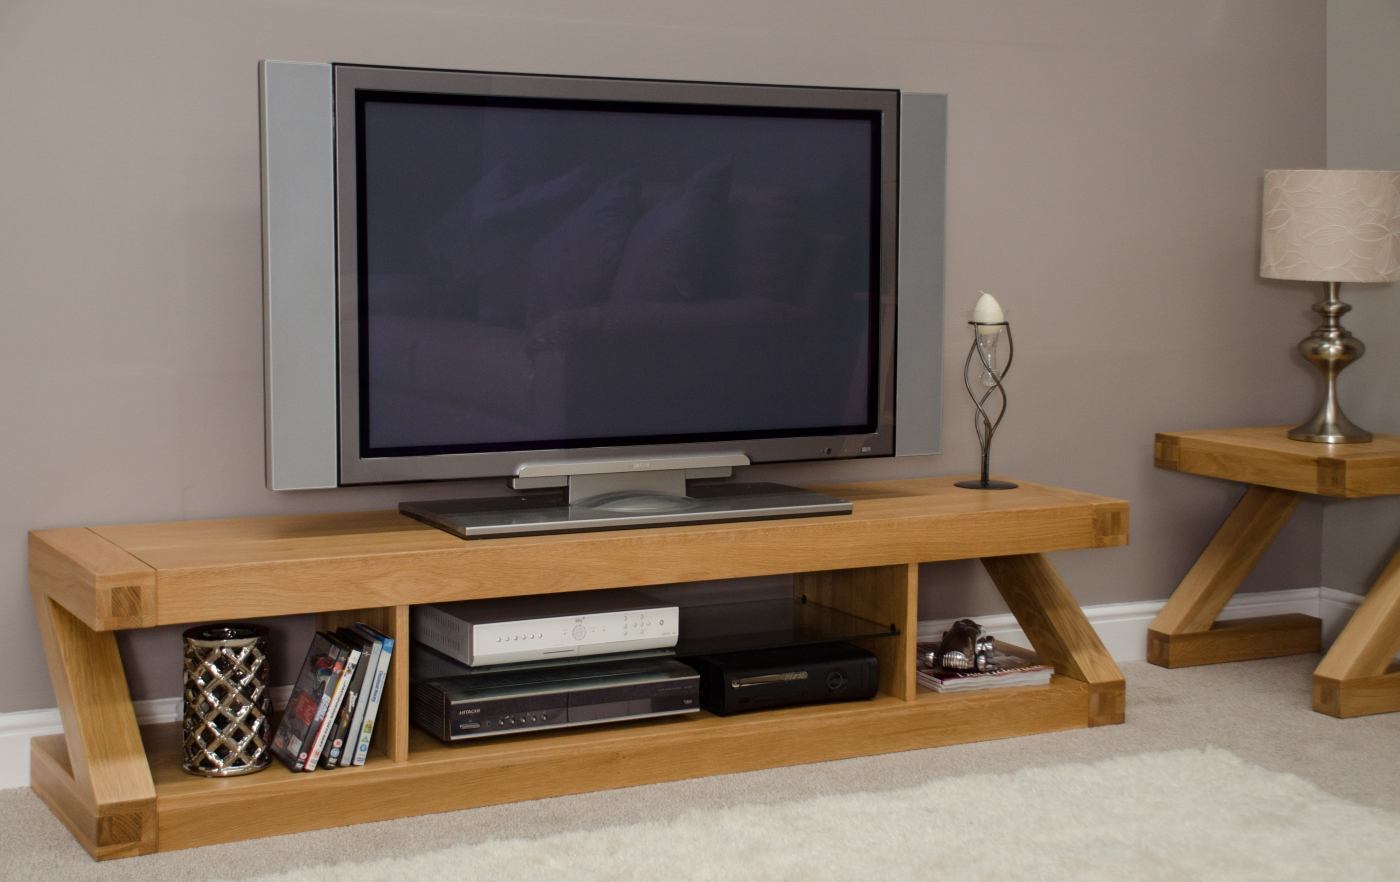 Z Solid Oak Designer Furniture Large Widescreen Tv Cabinet Stand Unit